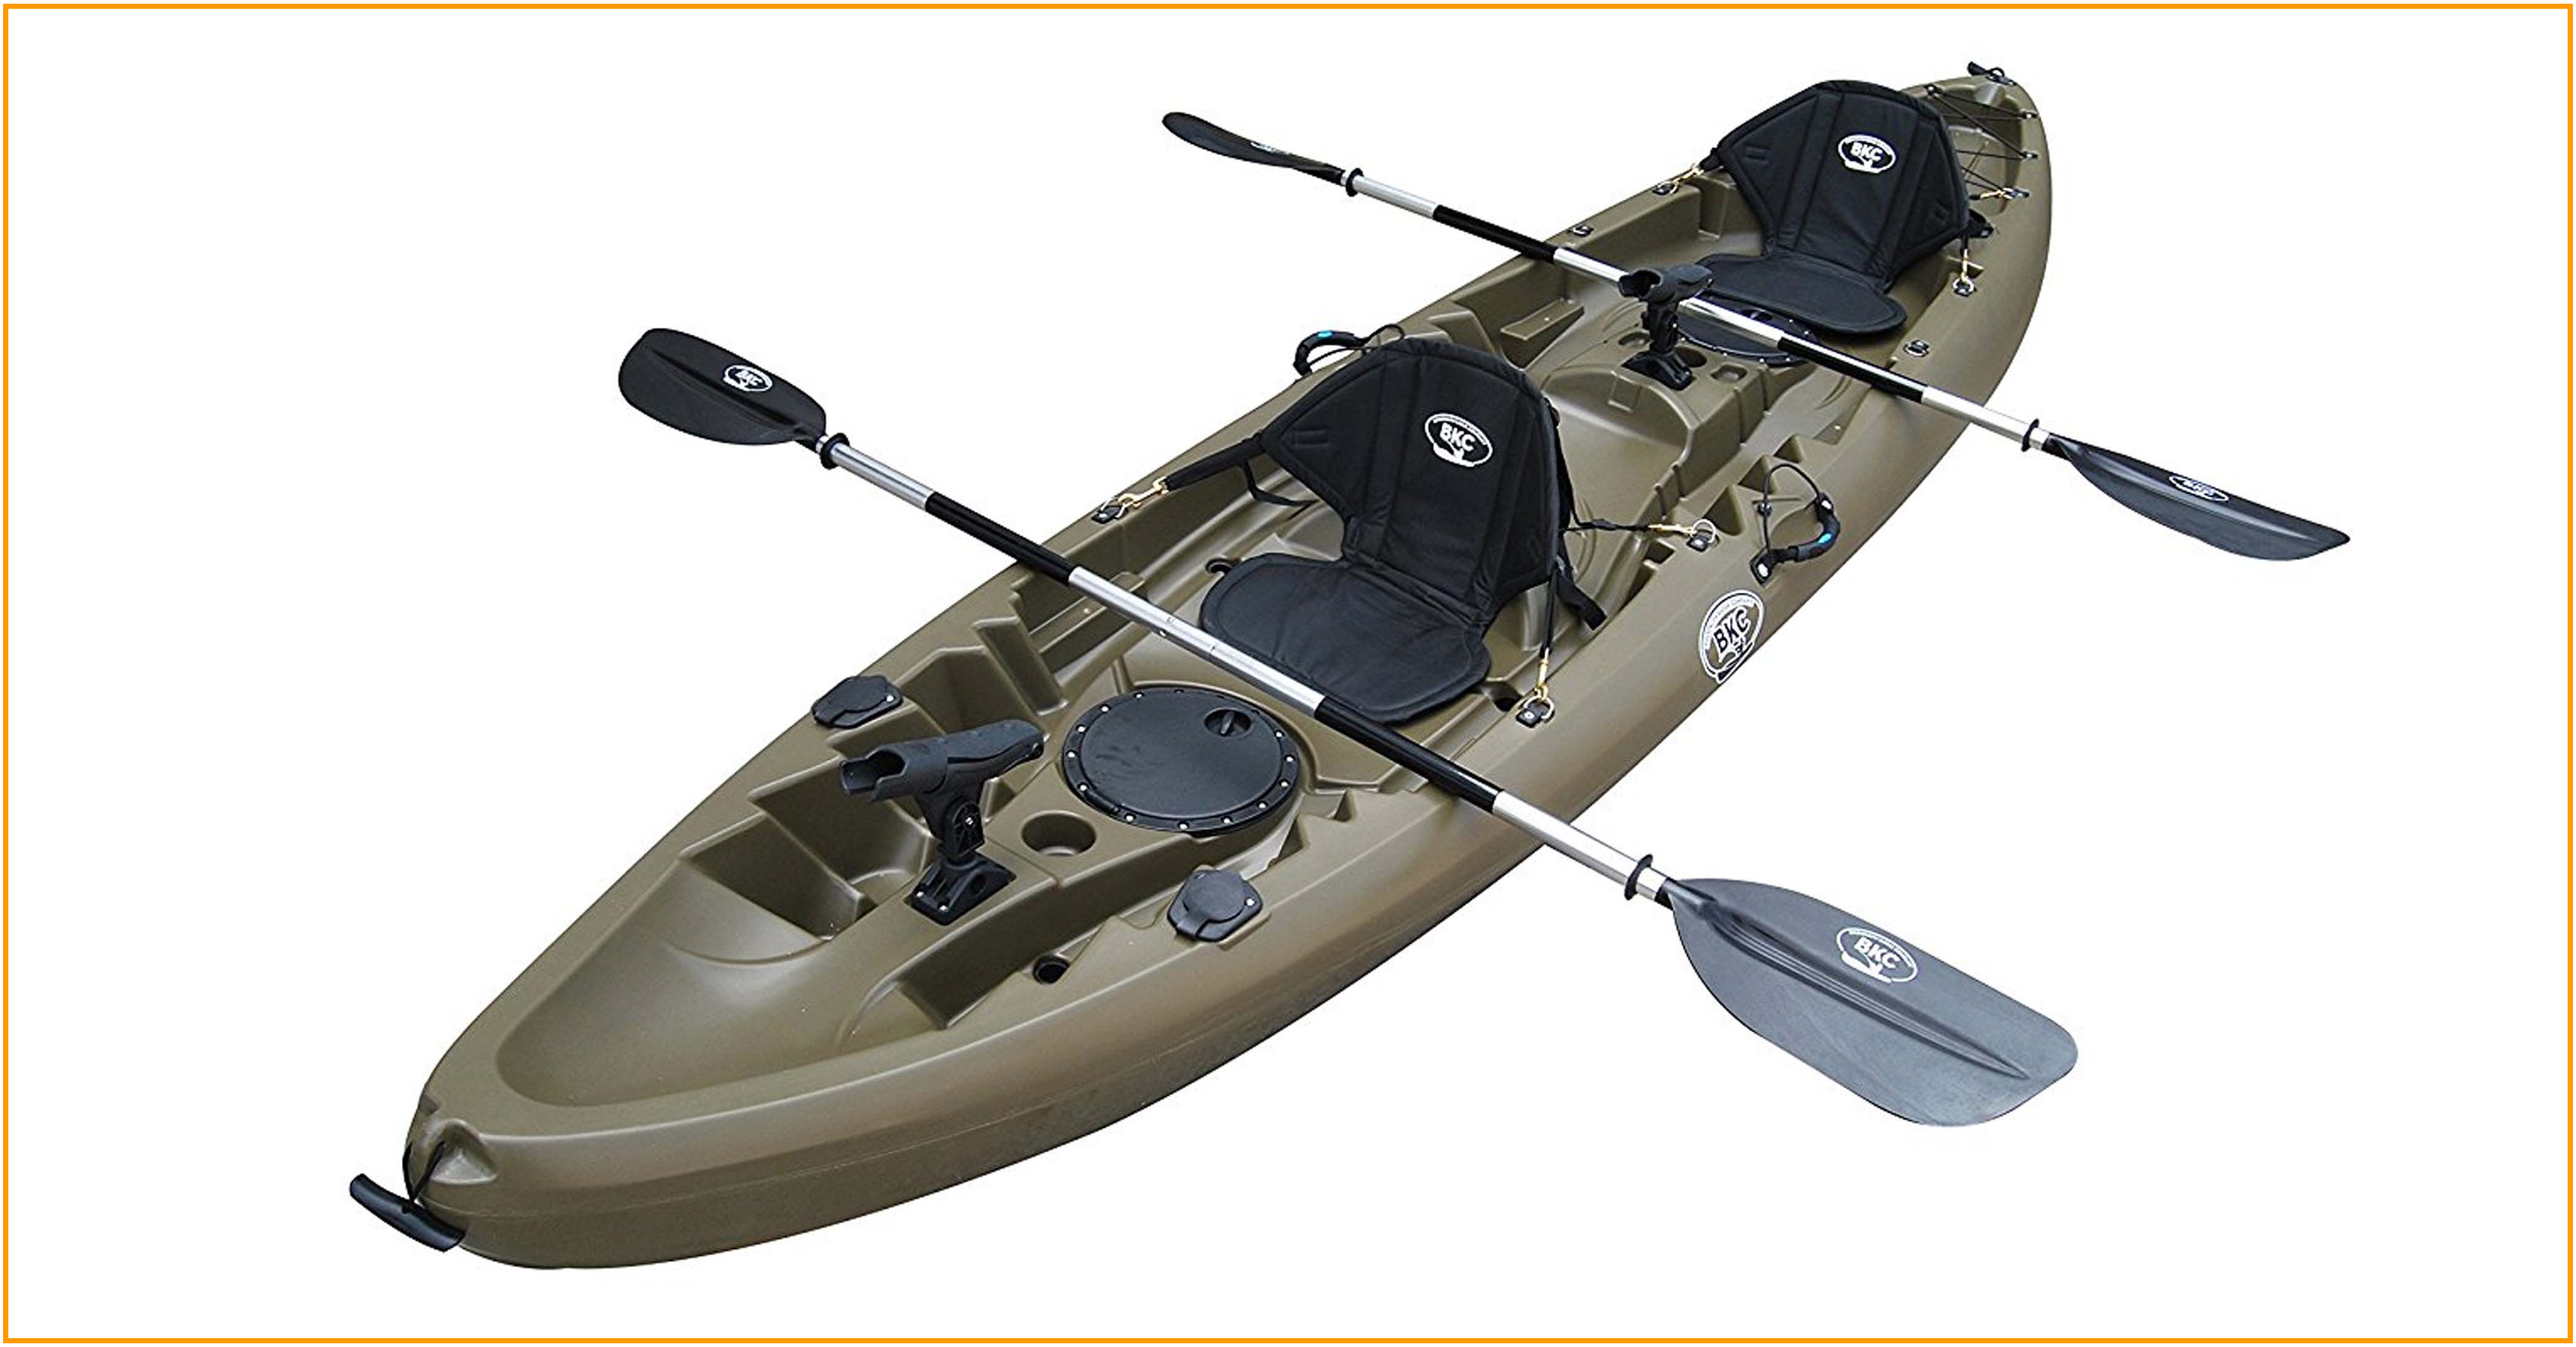 Brooklyn-Kayak-Company-UH-TK219-Tandem-Sit-On-Top-Kayak-Army-Green